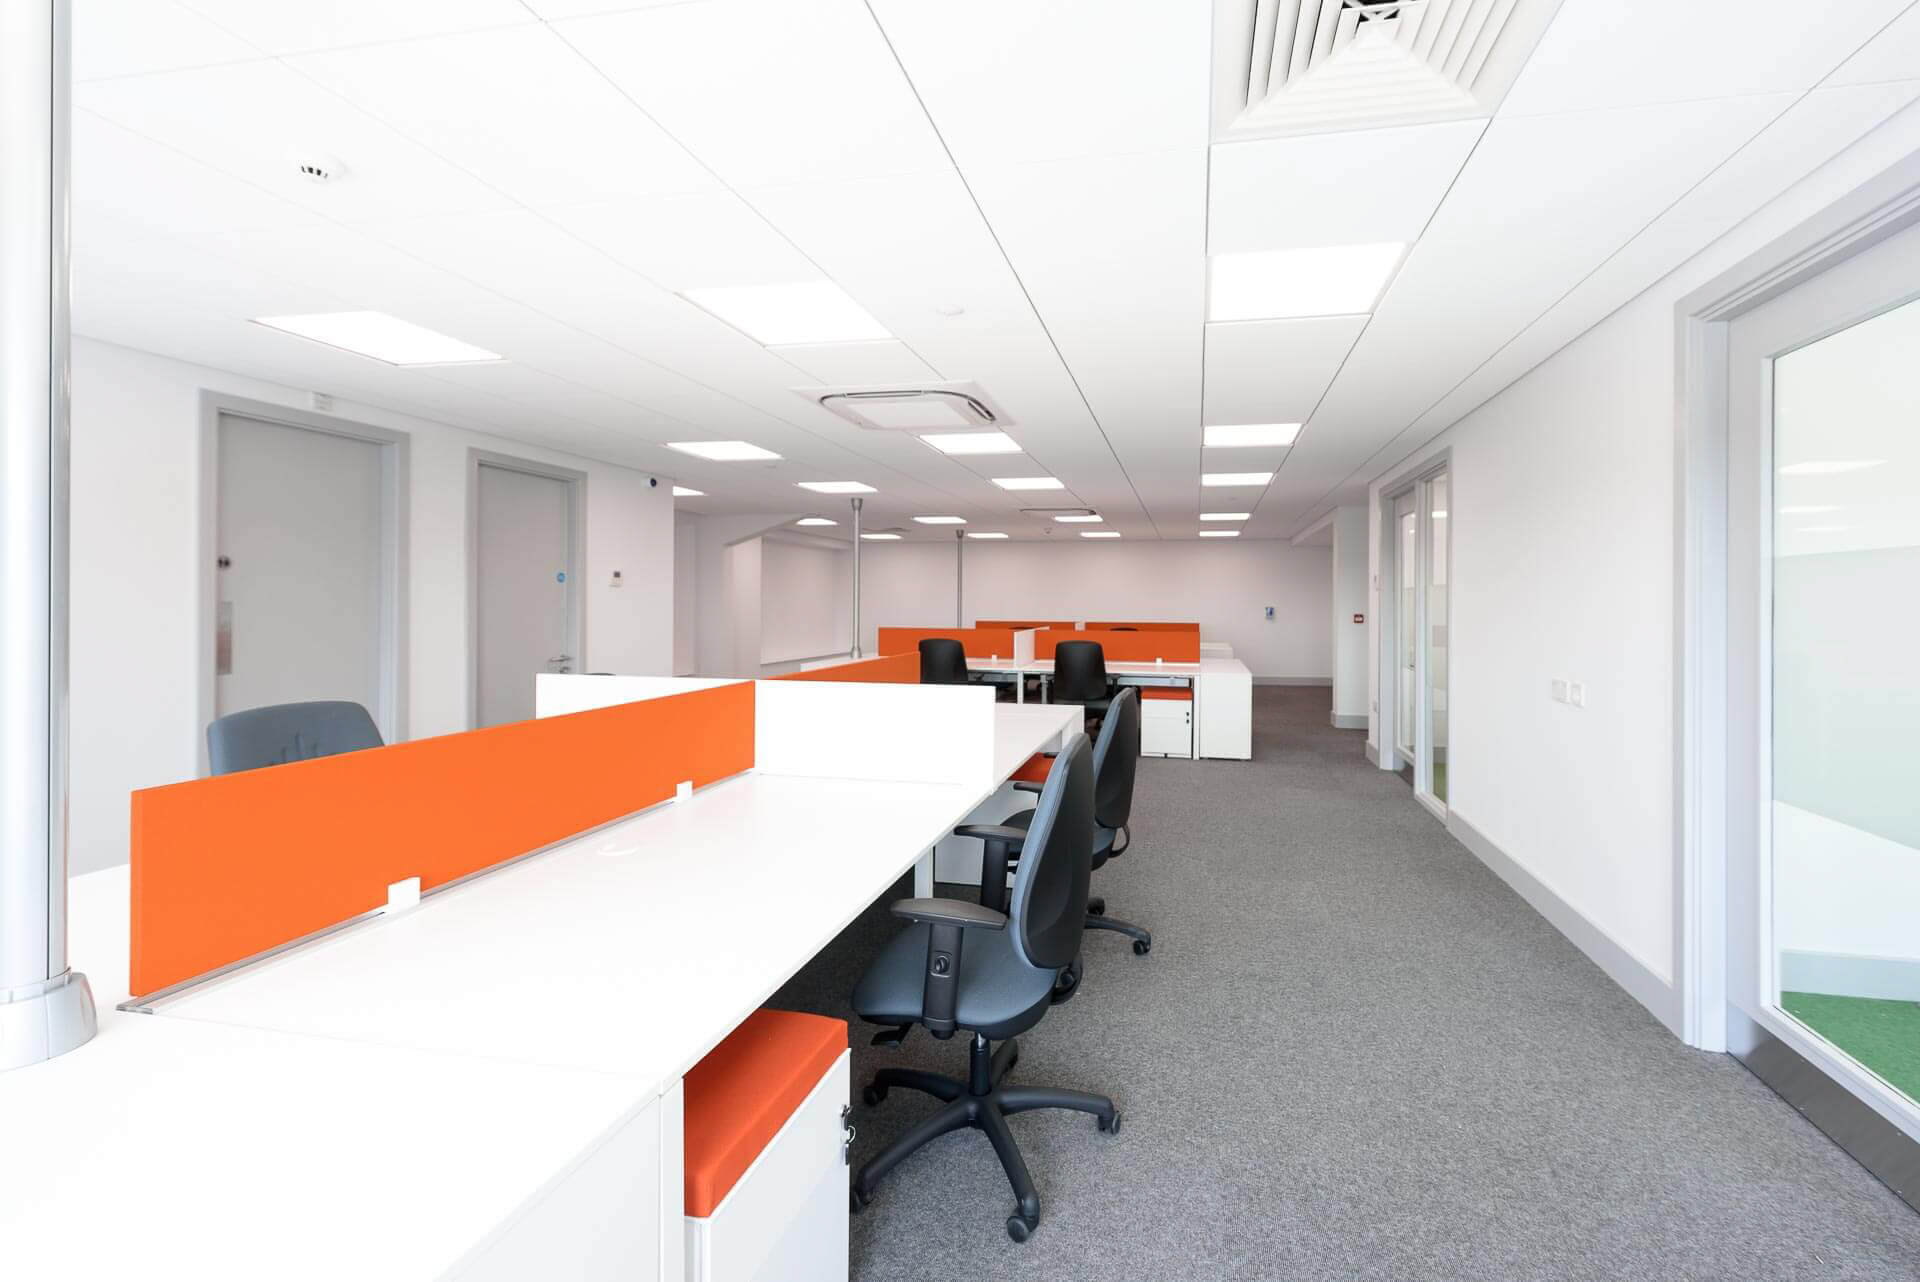 Second floor open plan office areas with cellular offices with glass manifestations to the perimeter.